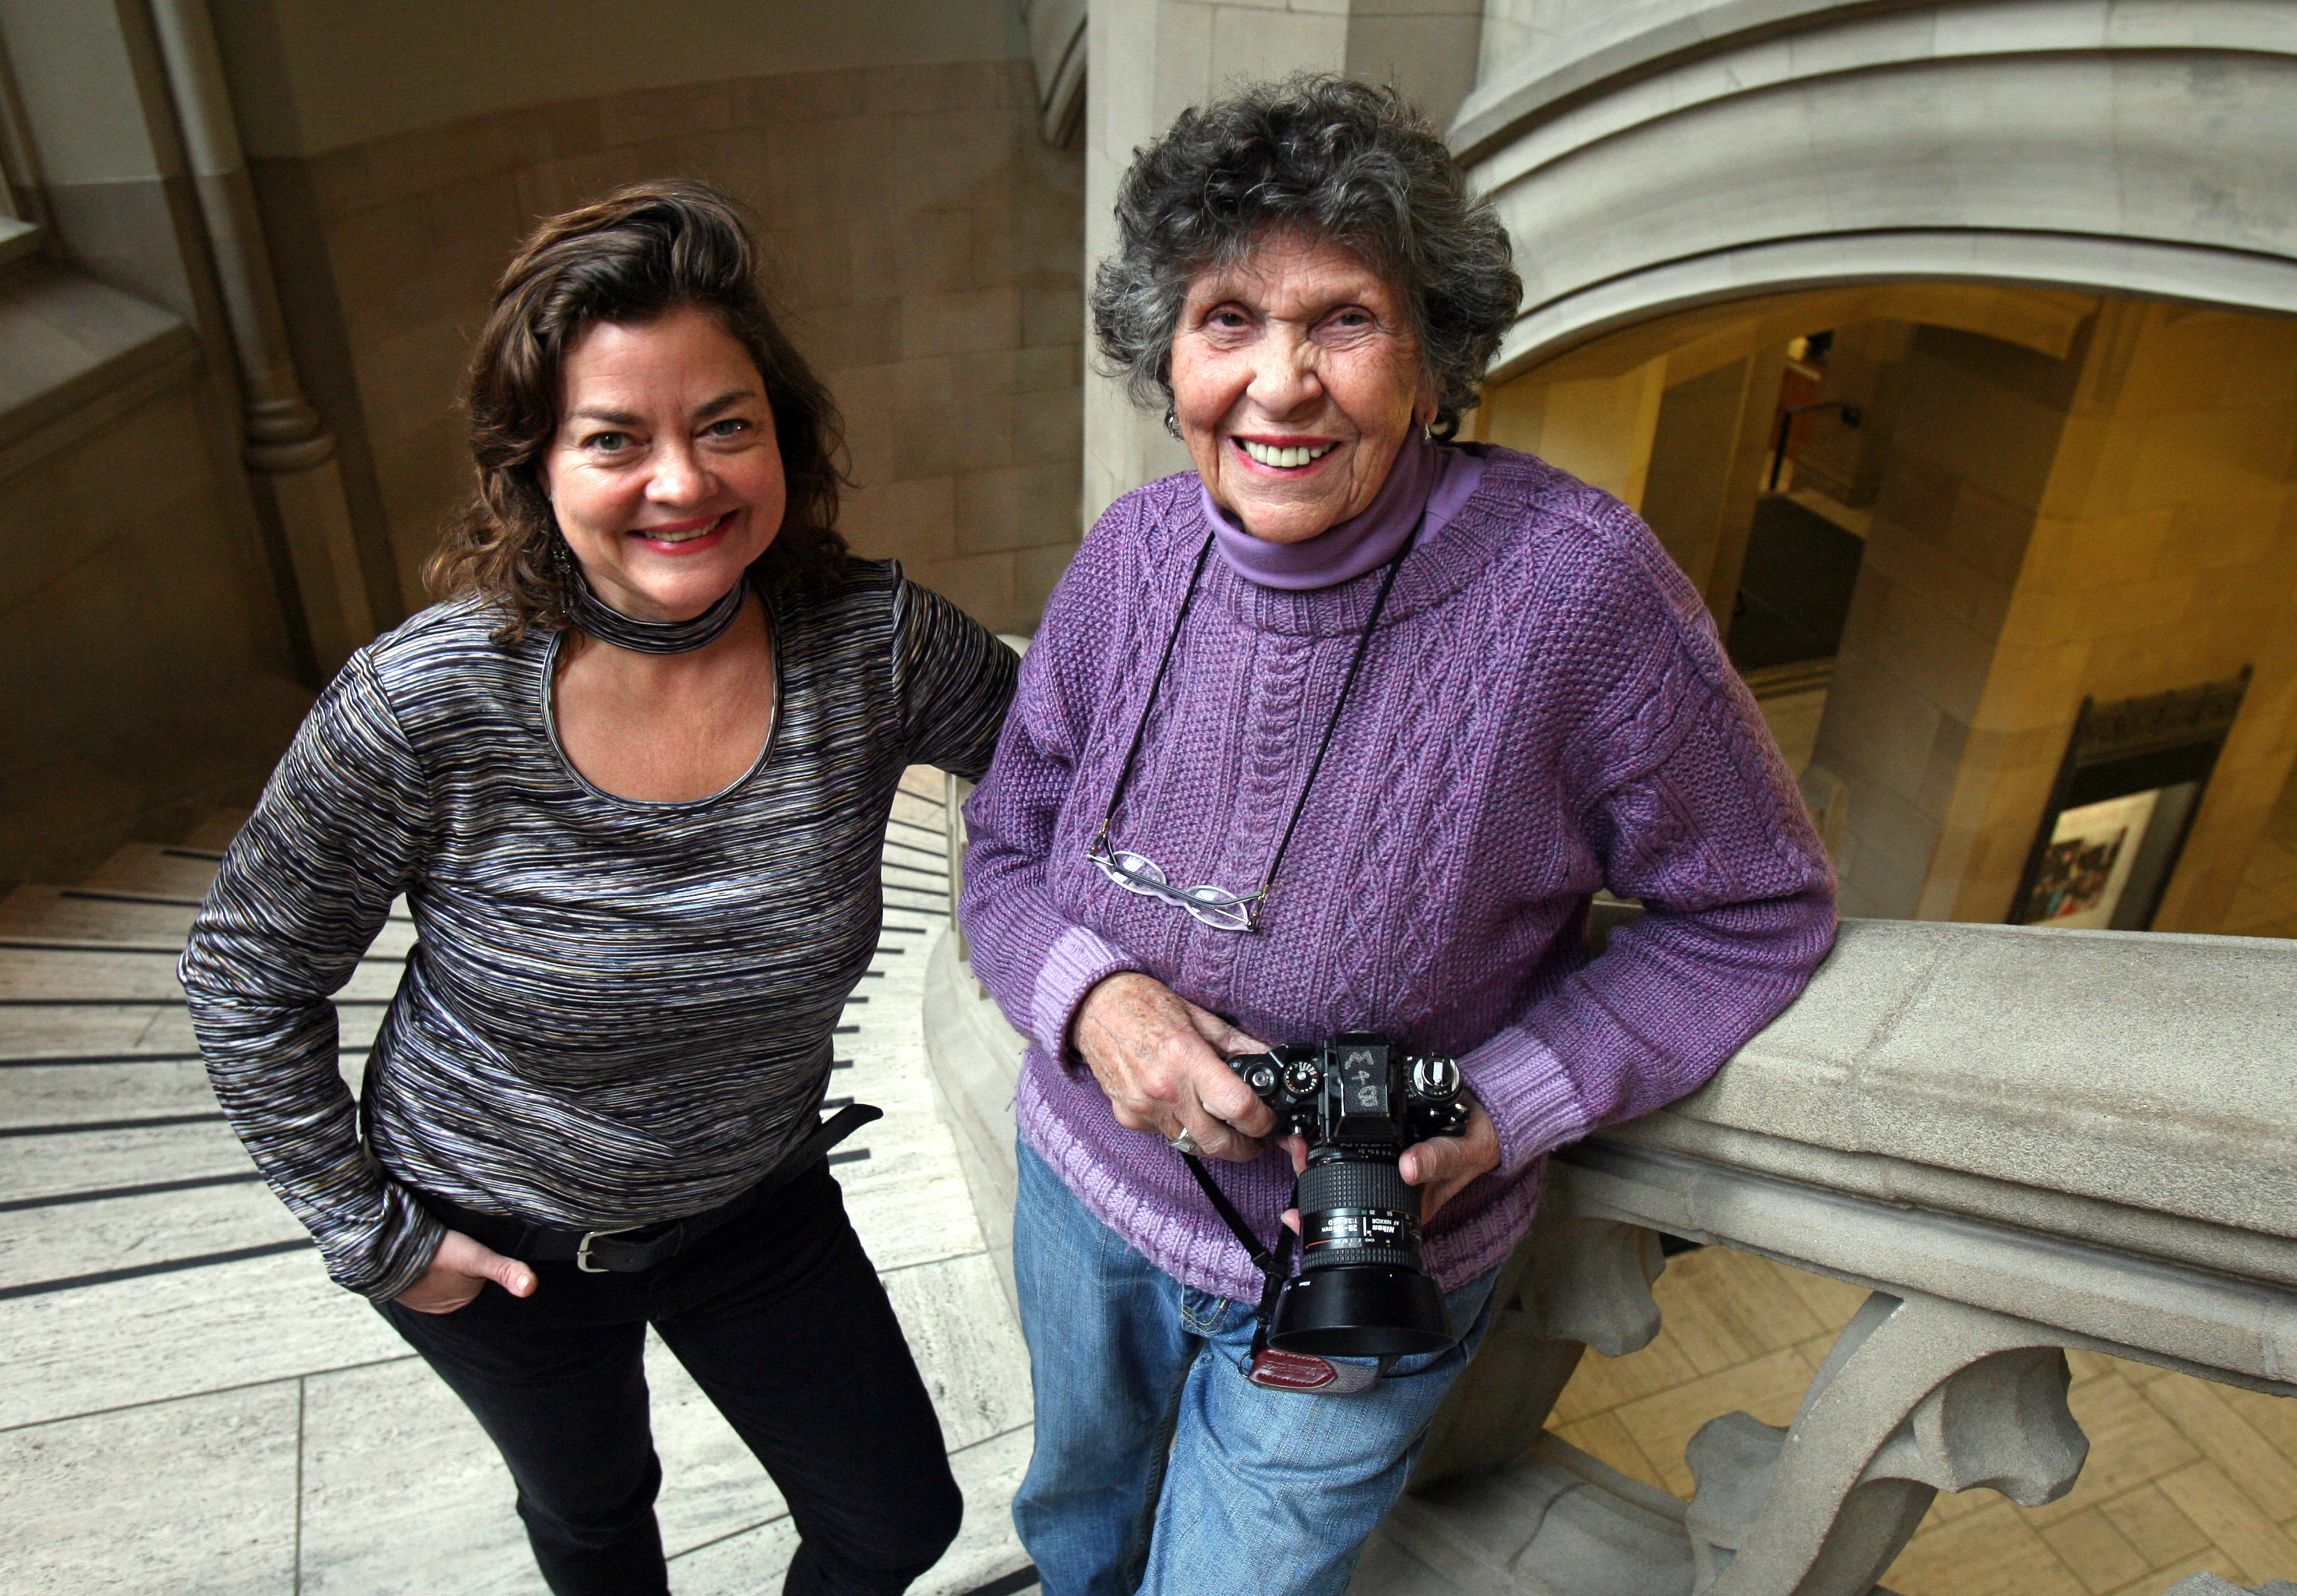 Frances McCue, left, and Mary Randlett. Photo by Greg Gilbert.